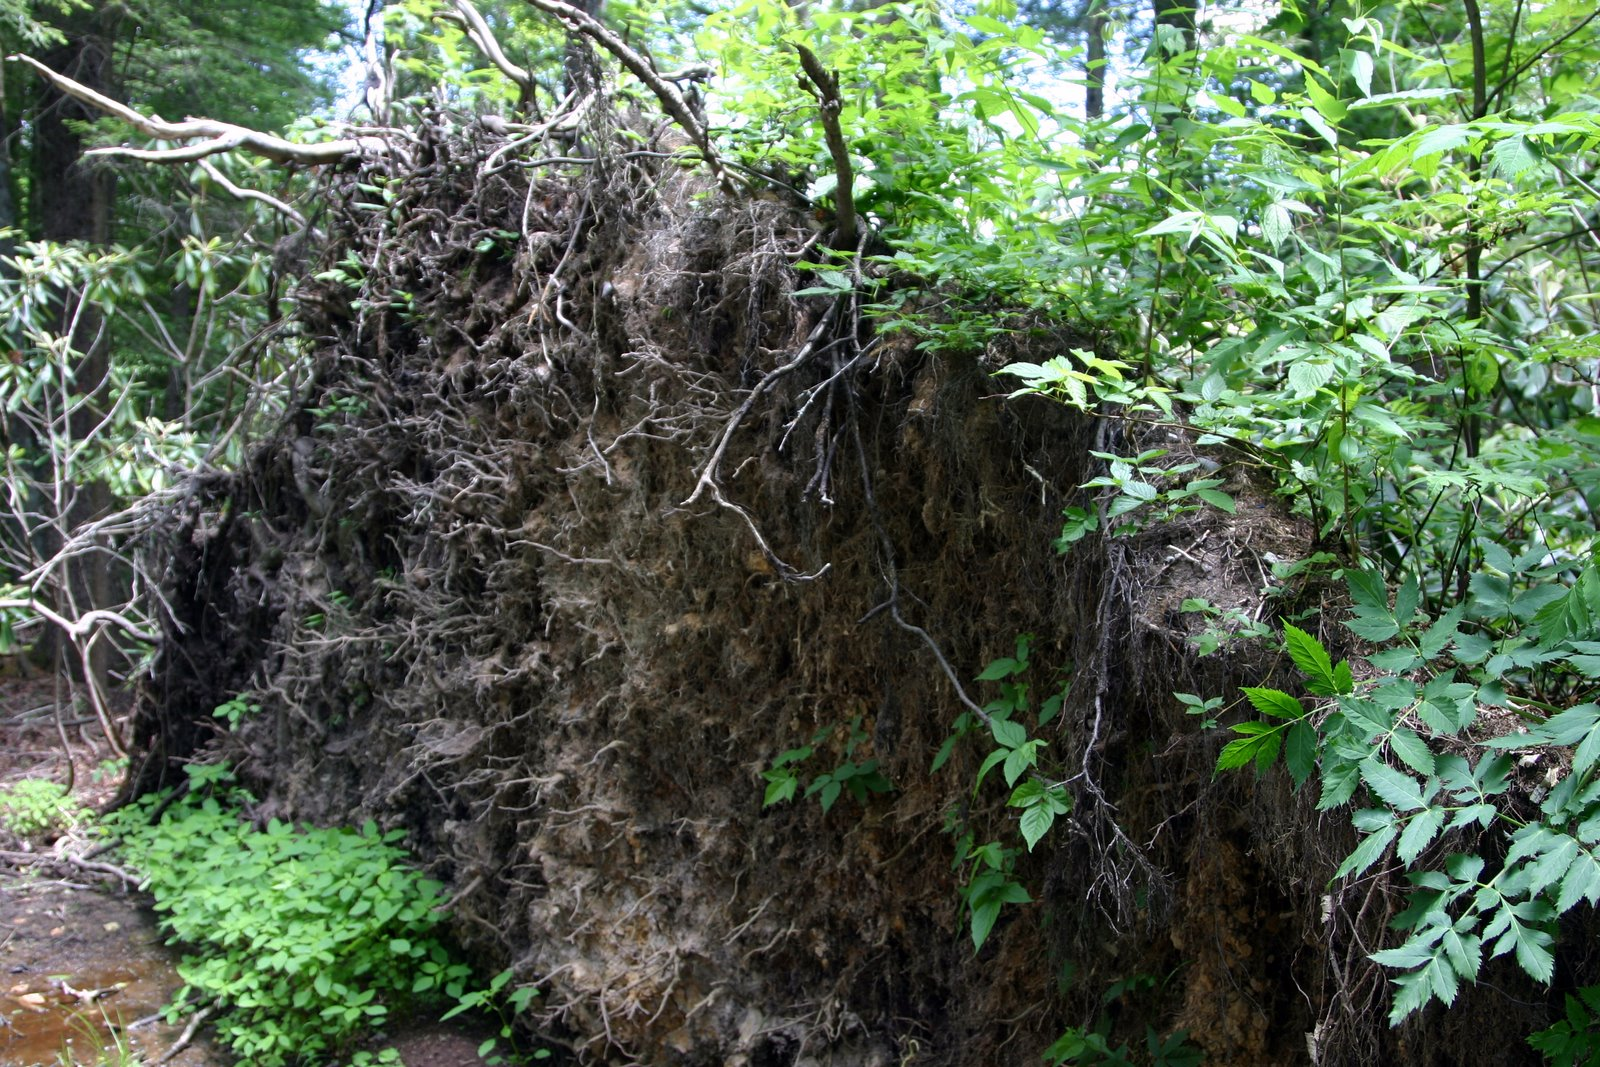 Root ball over overturned tree